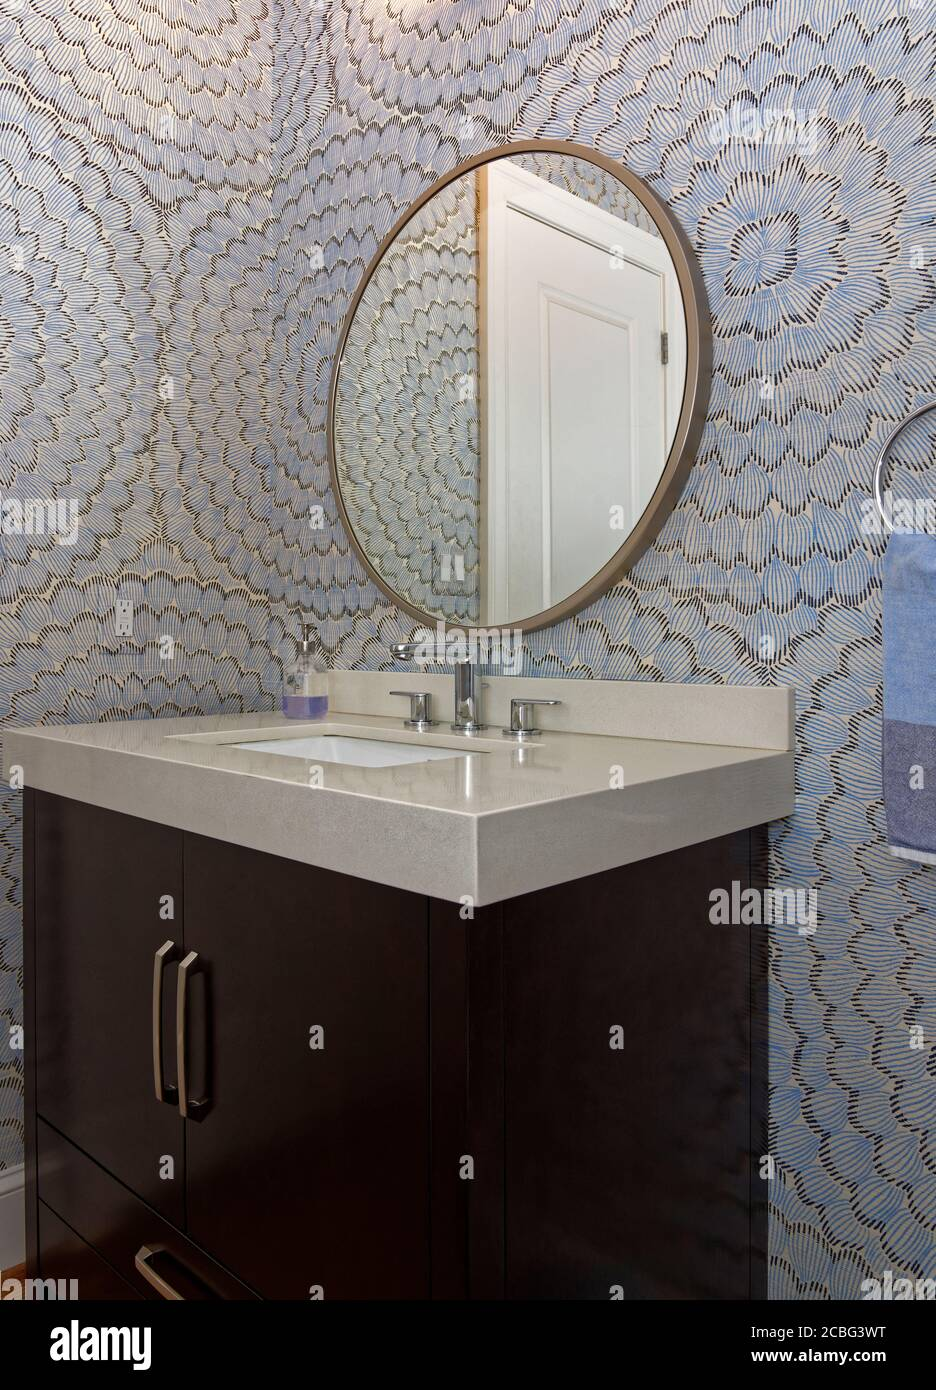 Round Vanity Mirror Bathroom High Resolution Stock Photography And Images Alamy